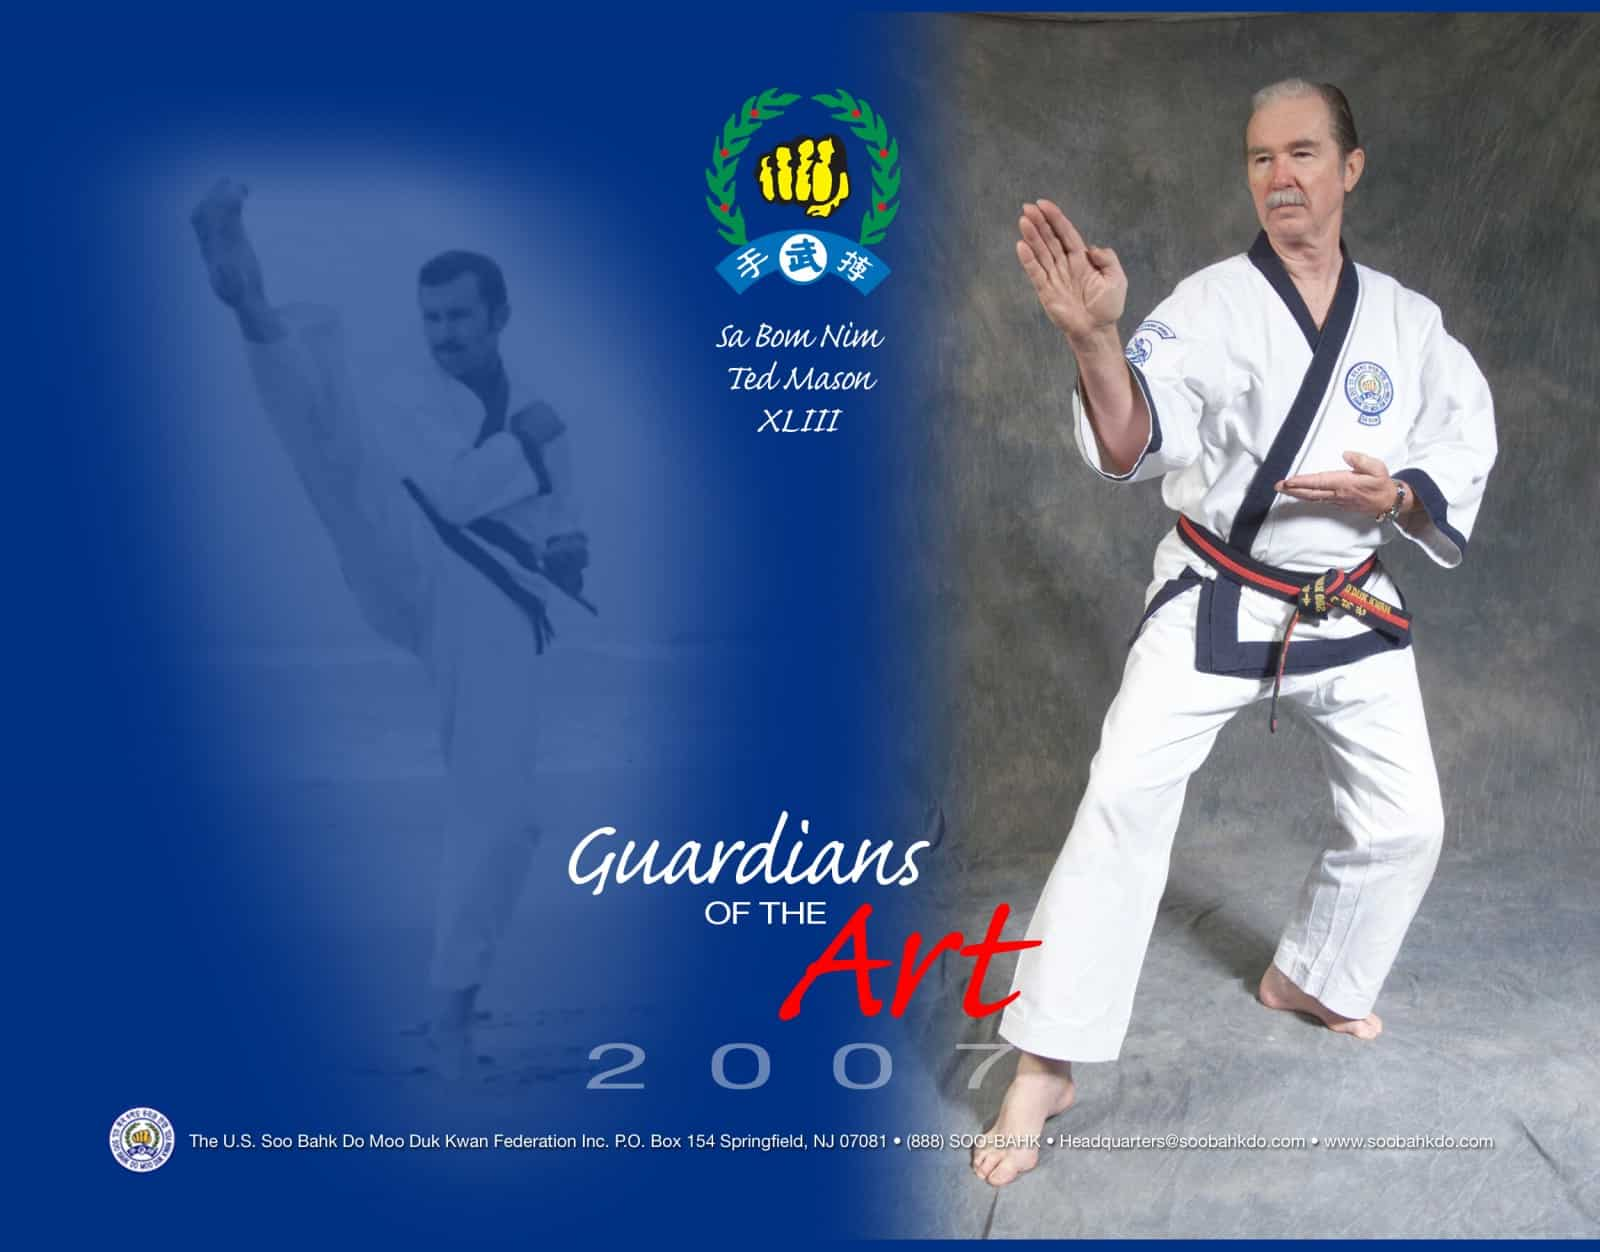 The us soo bahk do moo duk kwan federation history of the united states soo bahk do moo duk kwan federation fandeluxe Image collections